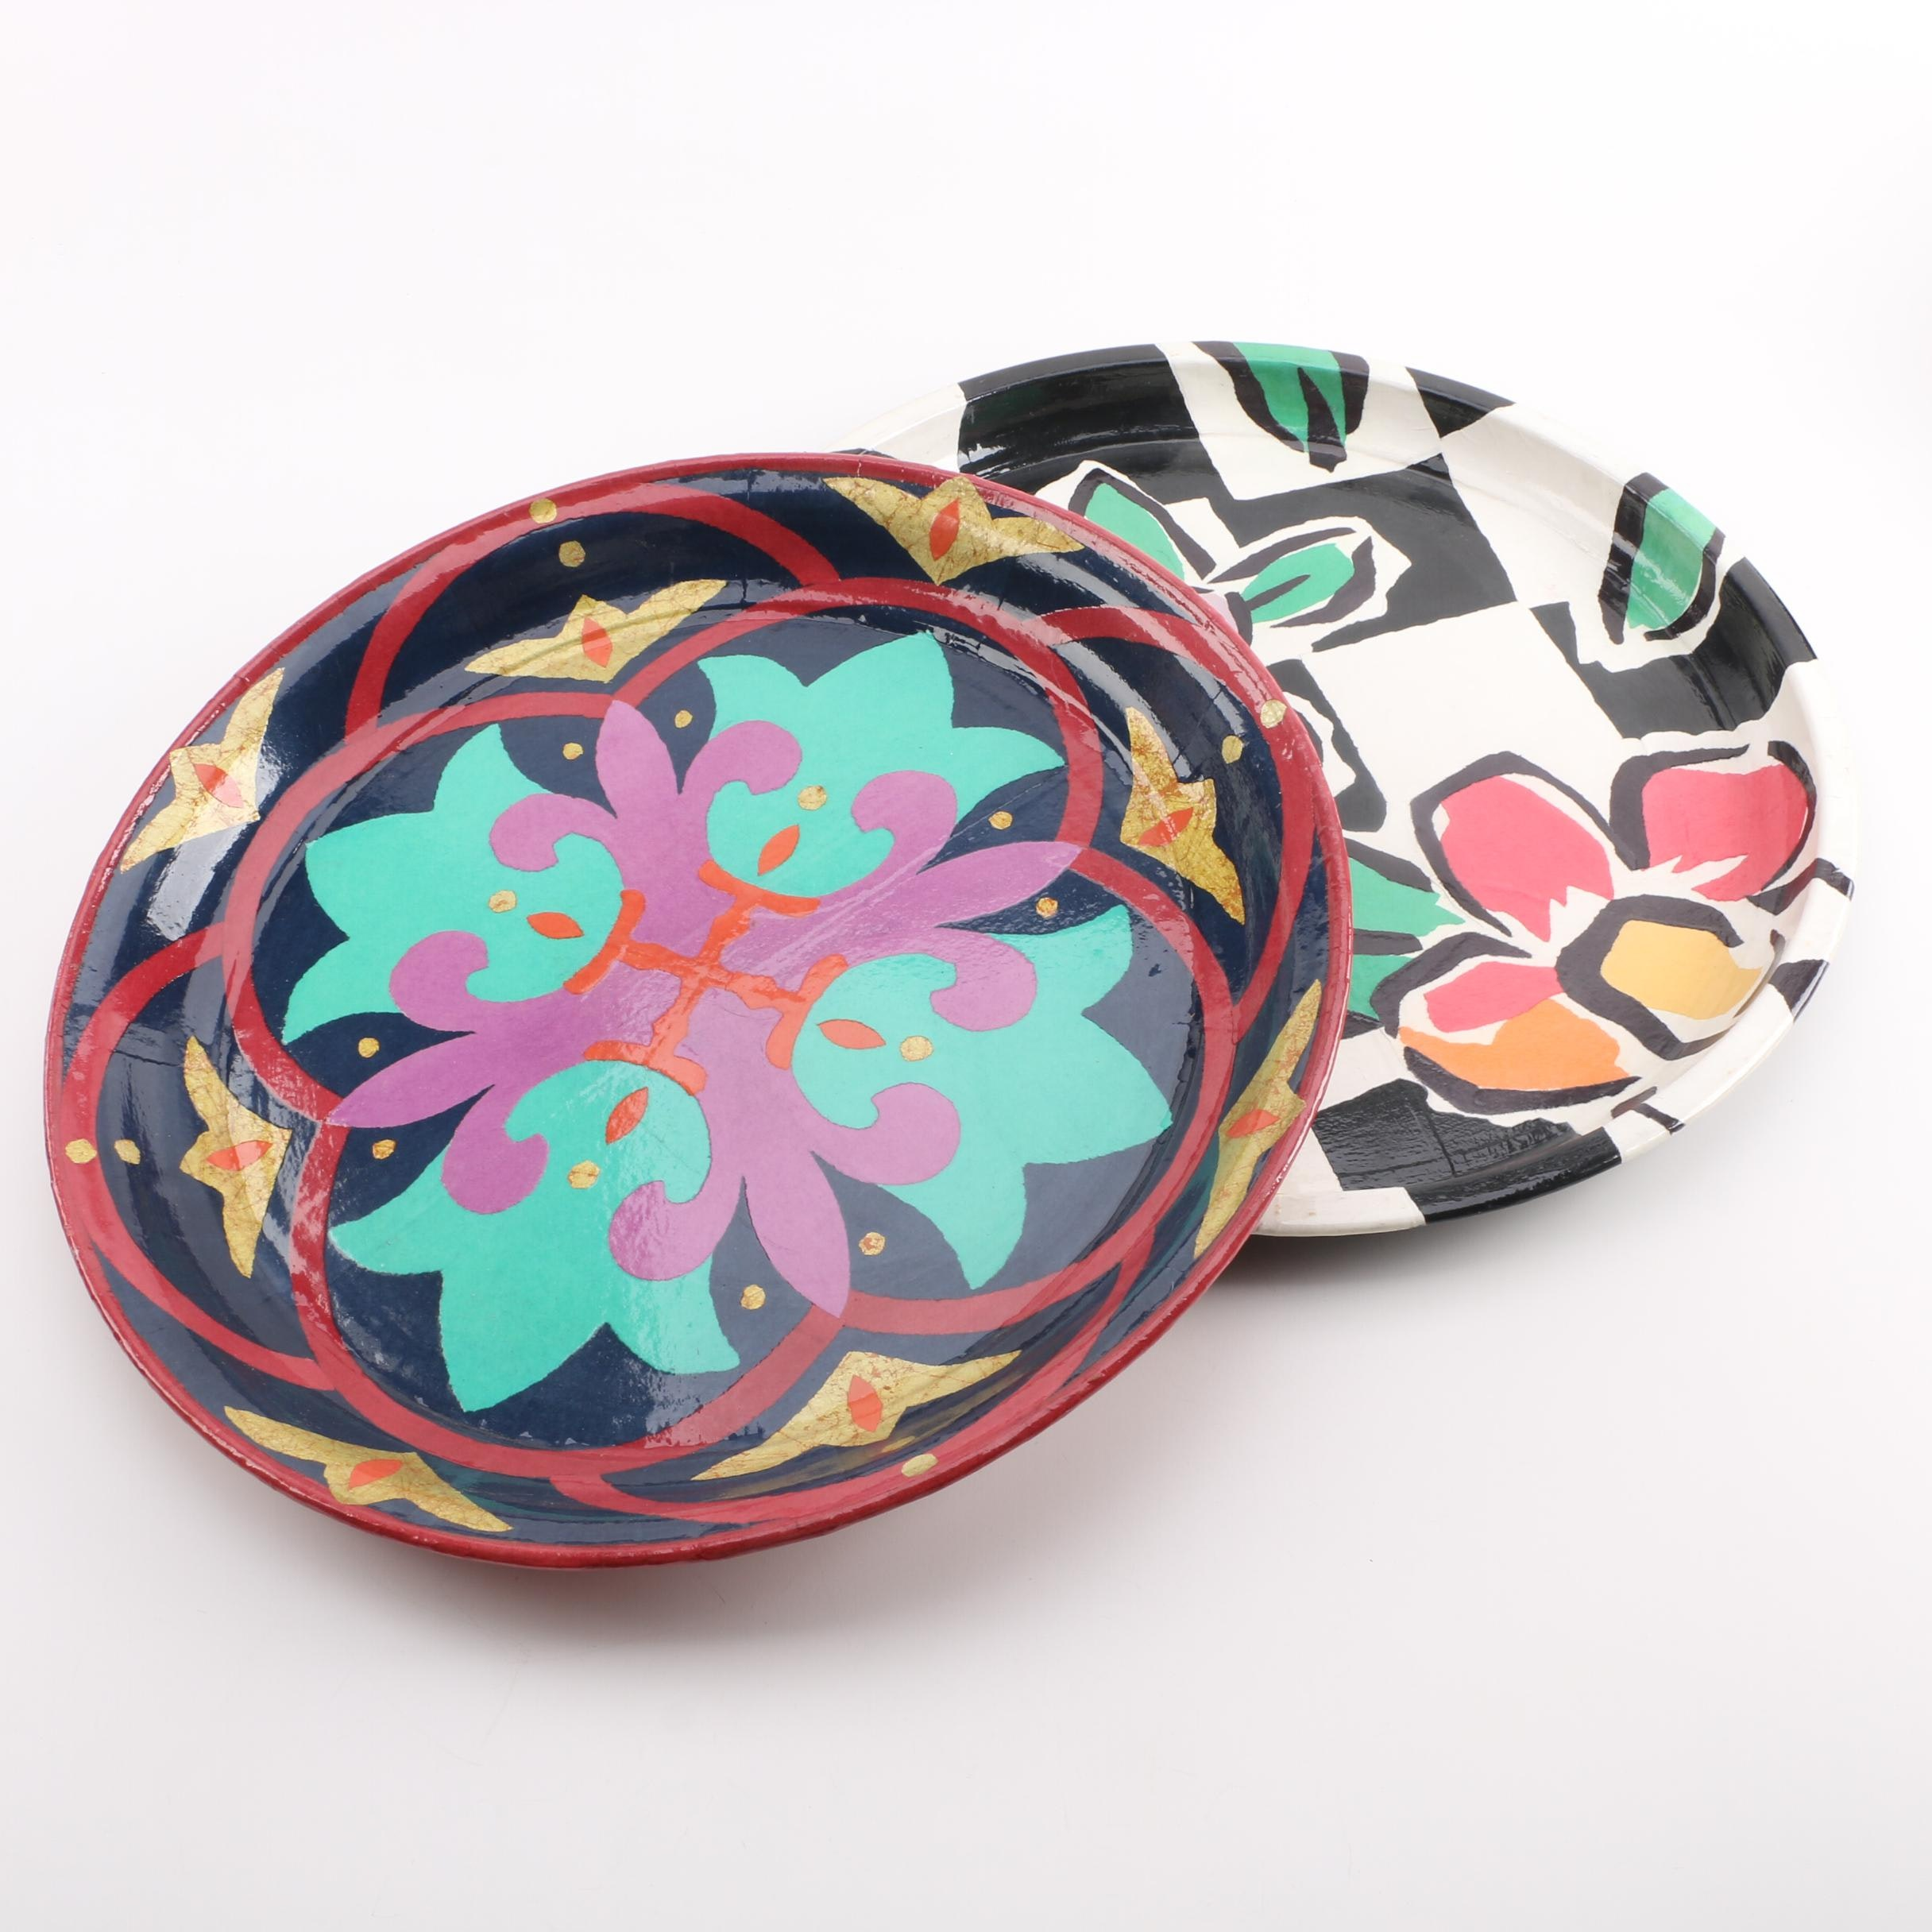 Colorful Decorative Lacquered Plates from Thailand